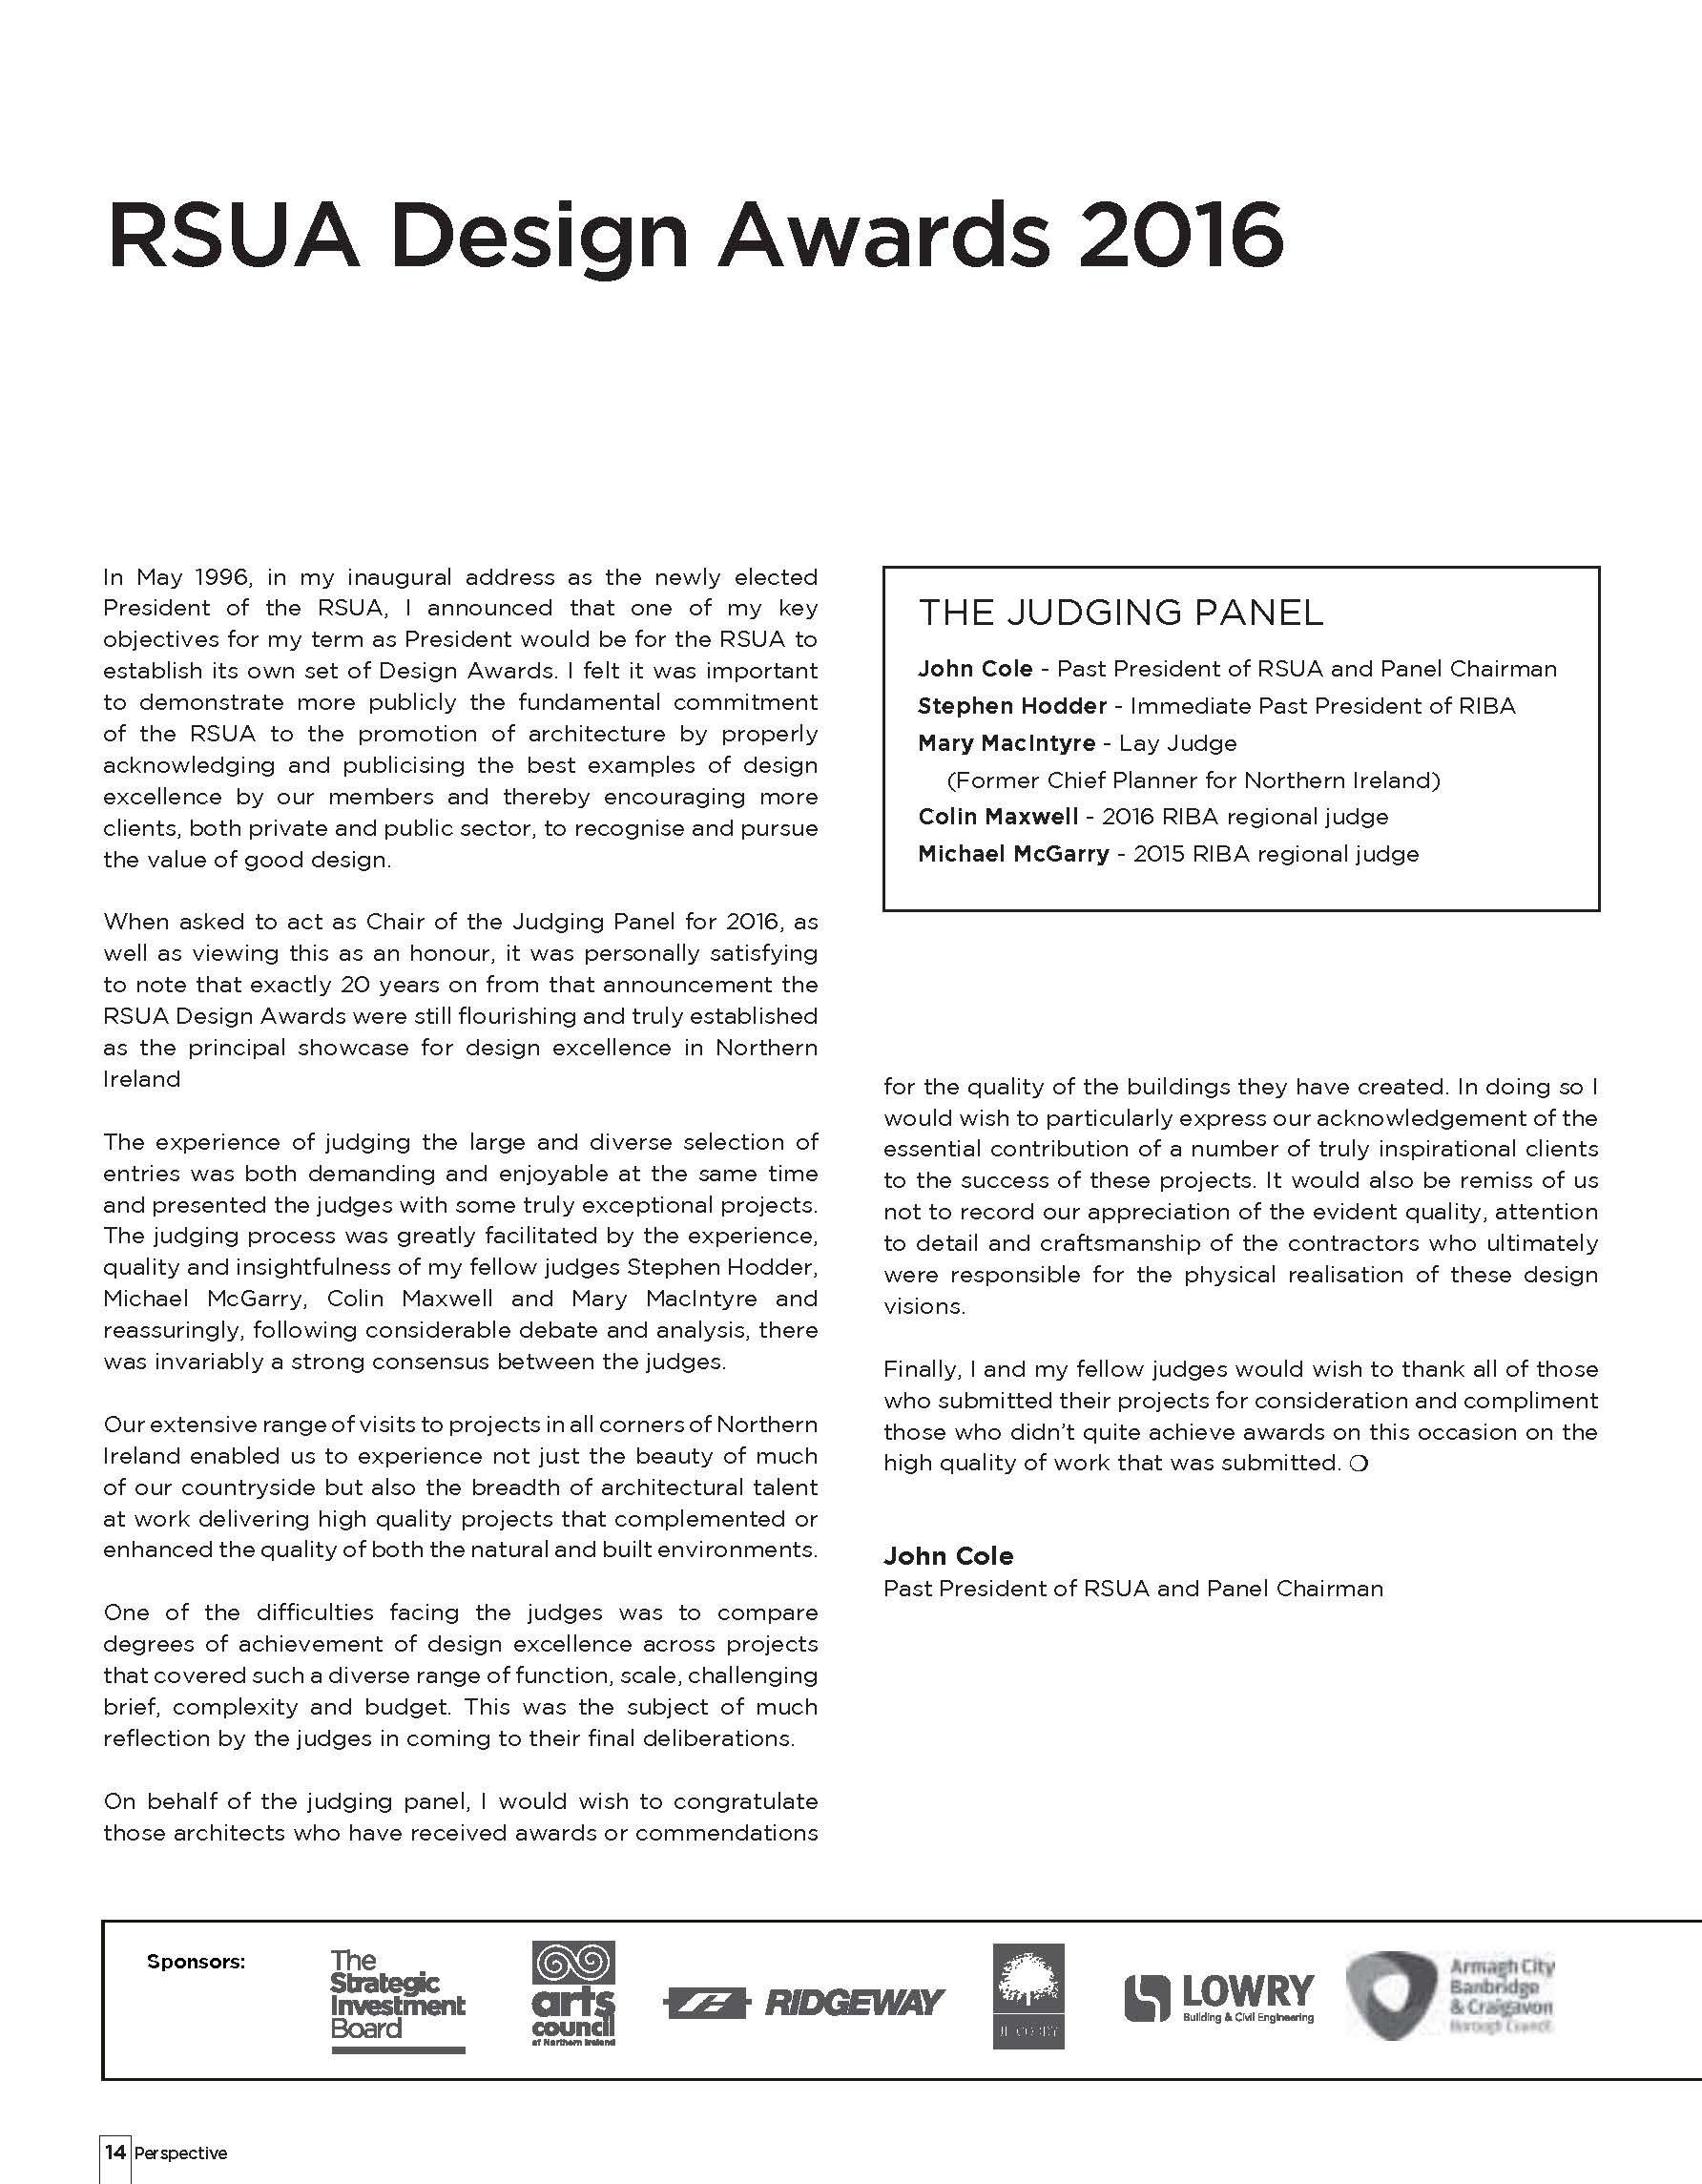 RSUA Awards Article - Perspective Magazine_Page_2.jpg